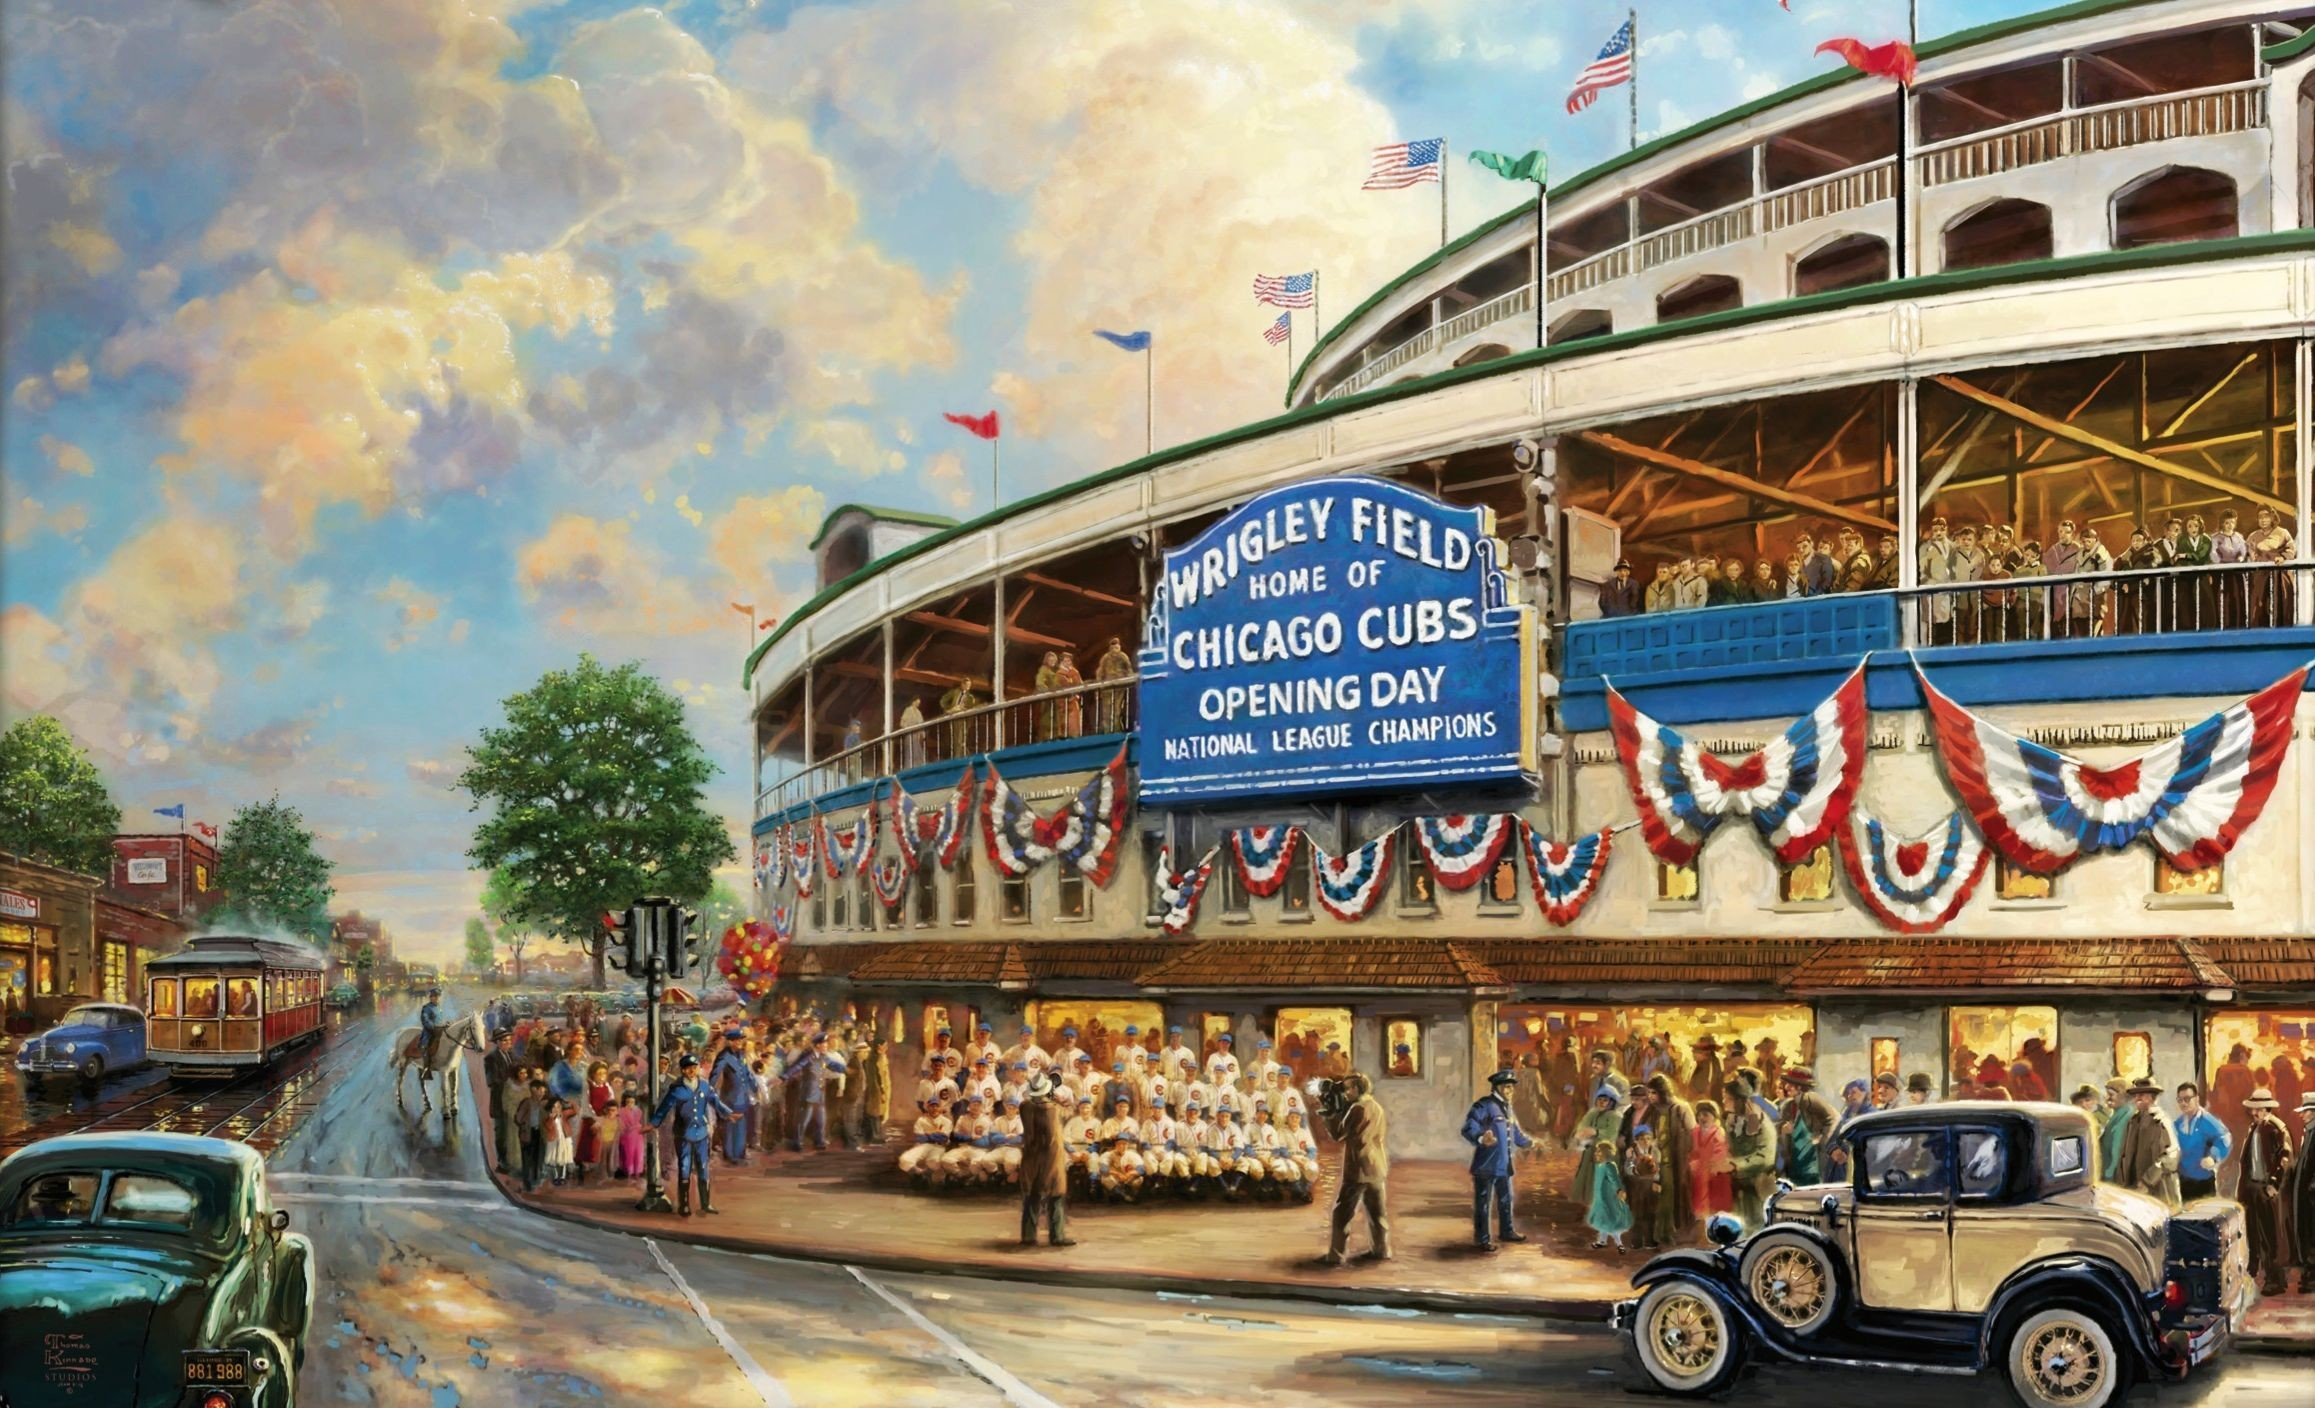 2315x1408 chicago cubs wallpaper | Home of chicago cubs street cars vintage HD  Wallpaper